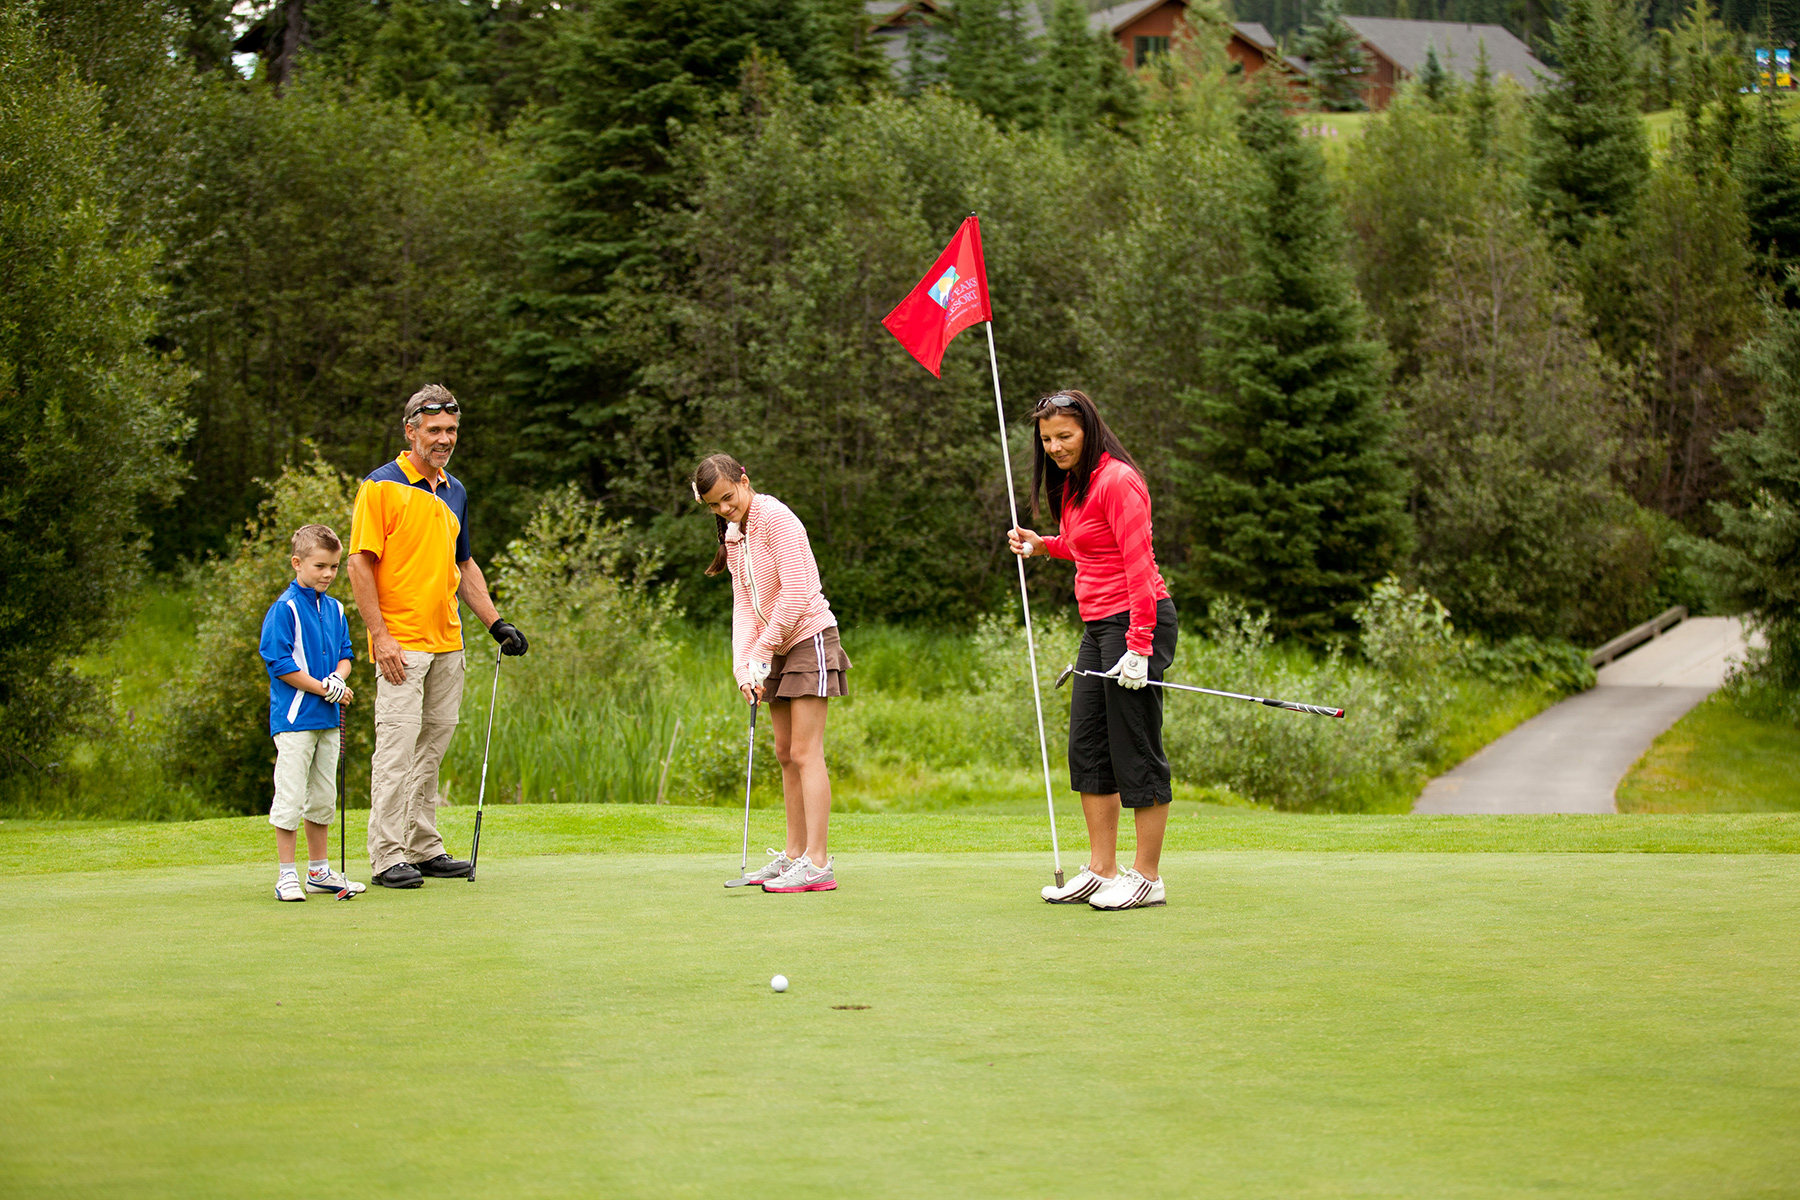 Family Playing Golf at Sun Peaks Resort